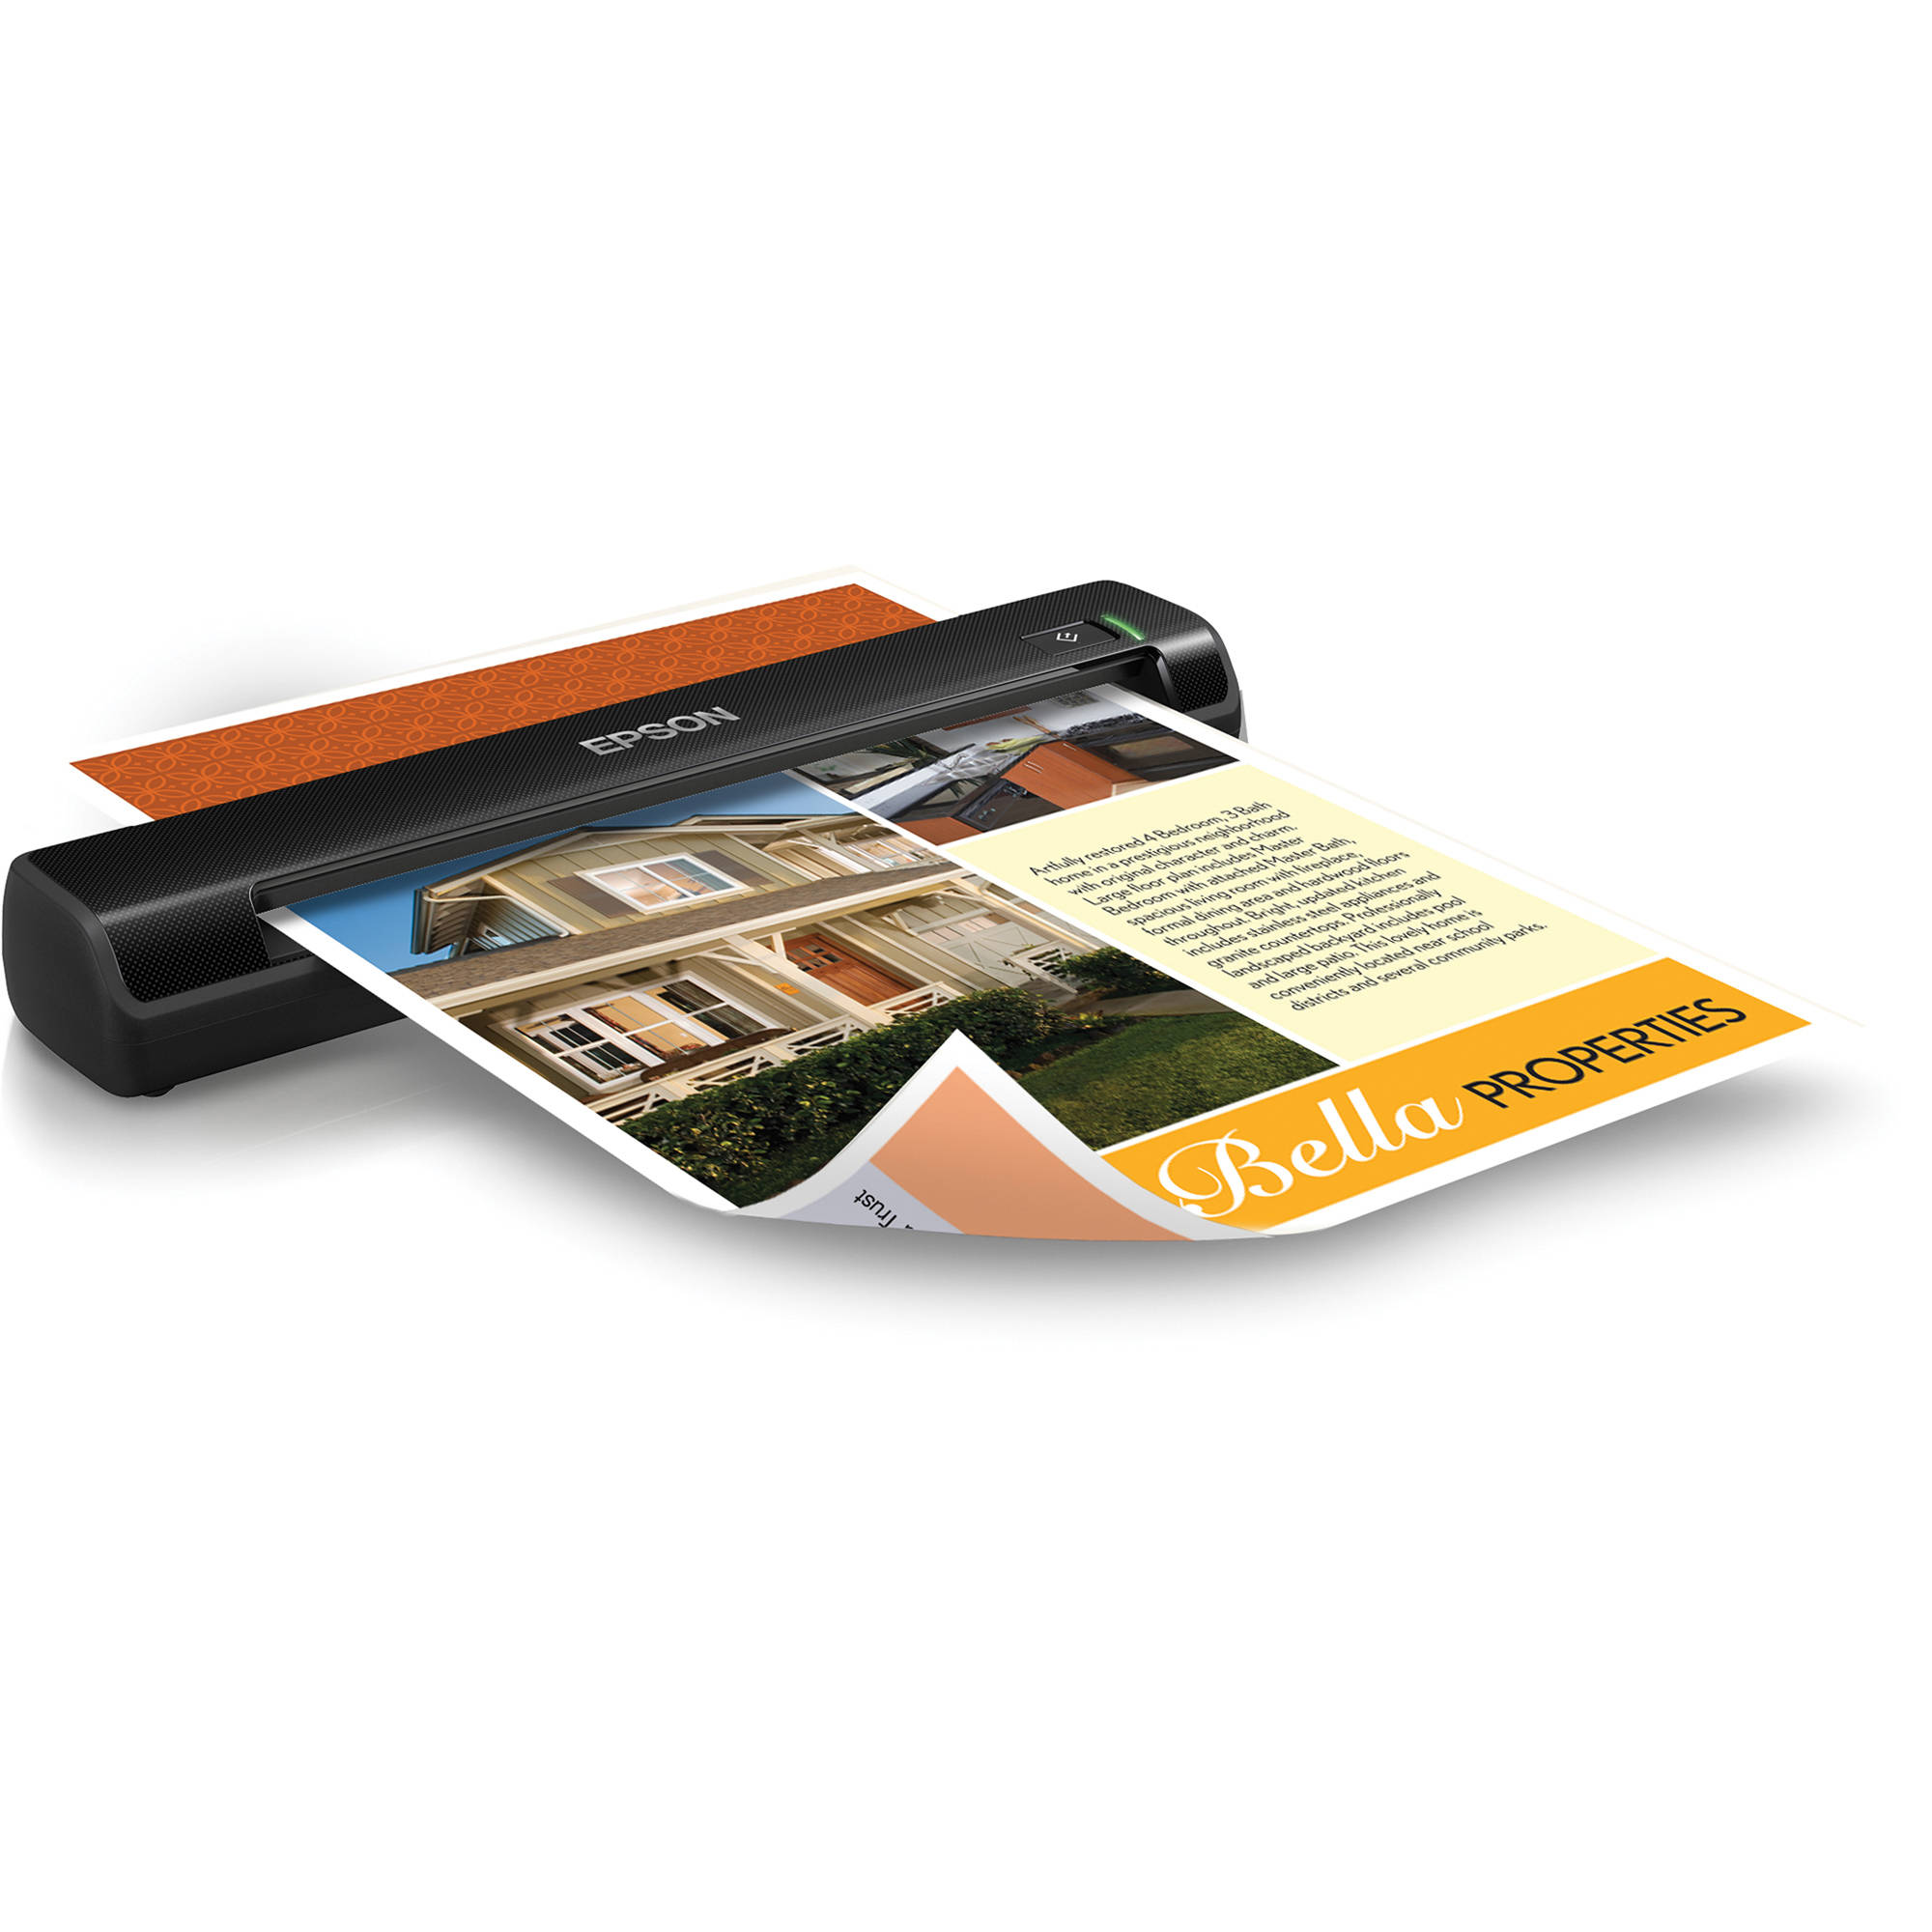 portable business card scanners